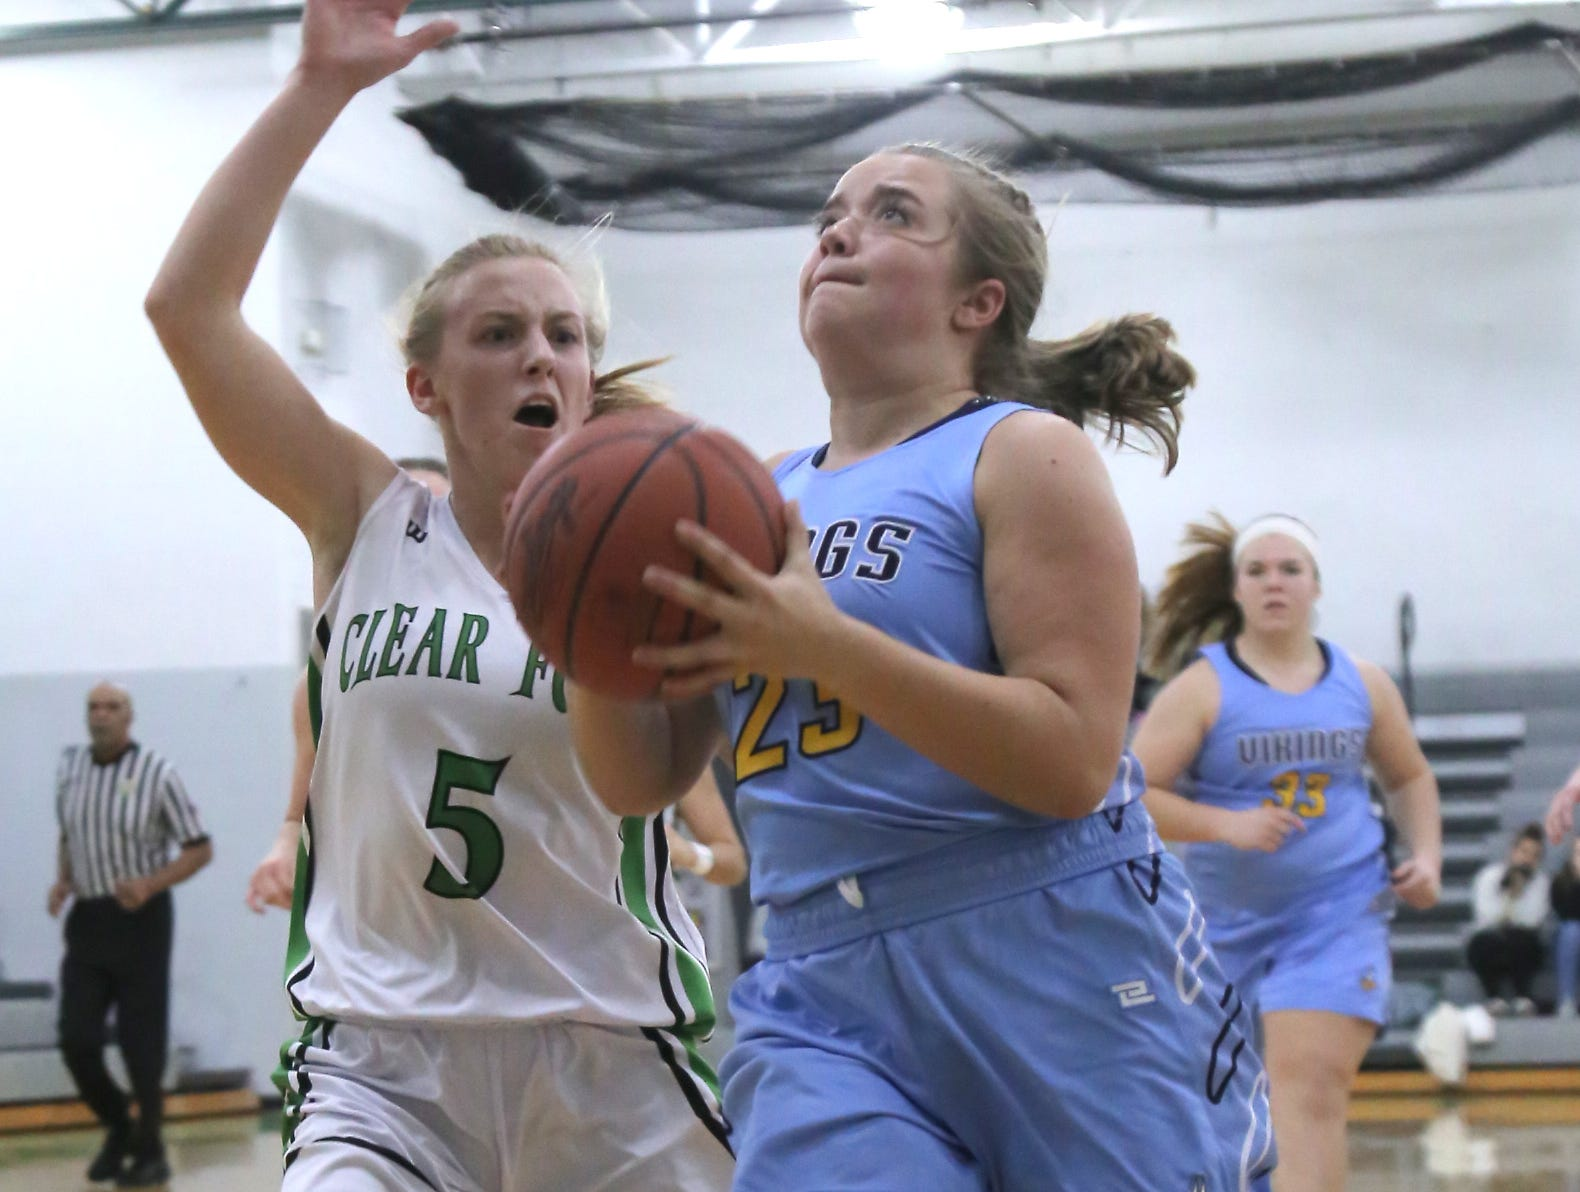 River Valley's Madi Lott attempts a shot against Clear Fork's Valerie Golden on Tuesday.